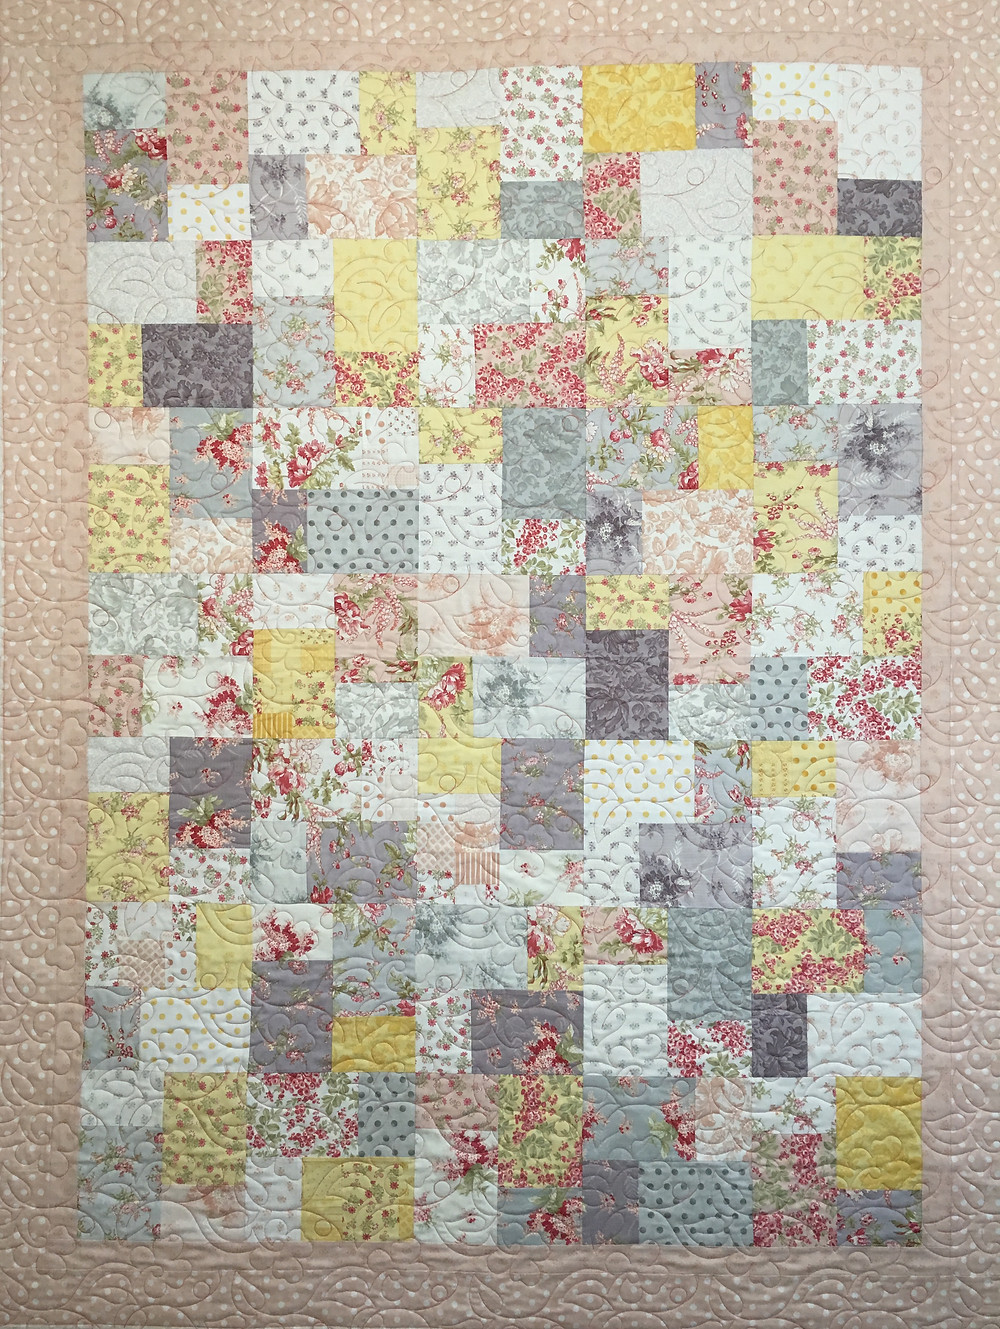 Sharon Gregorczyk Layer Cake Quilt in pastels.